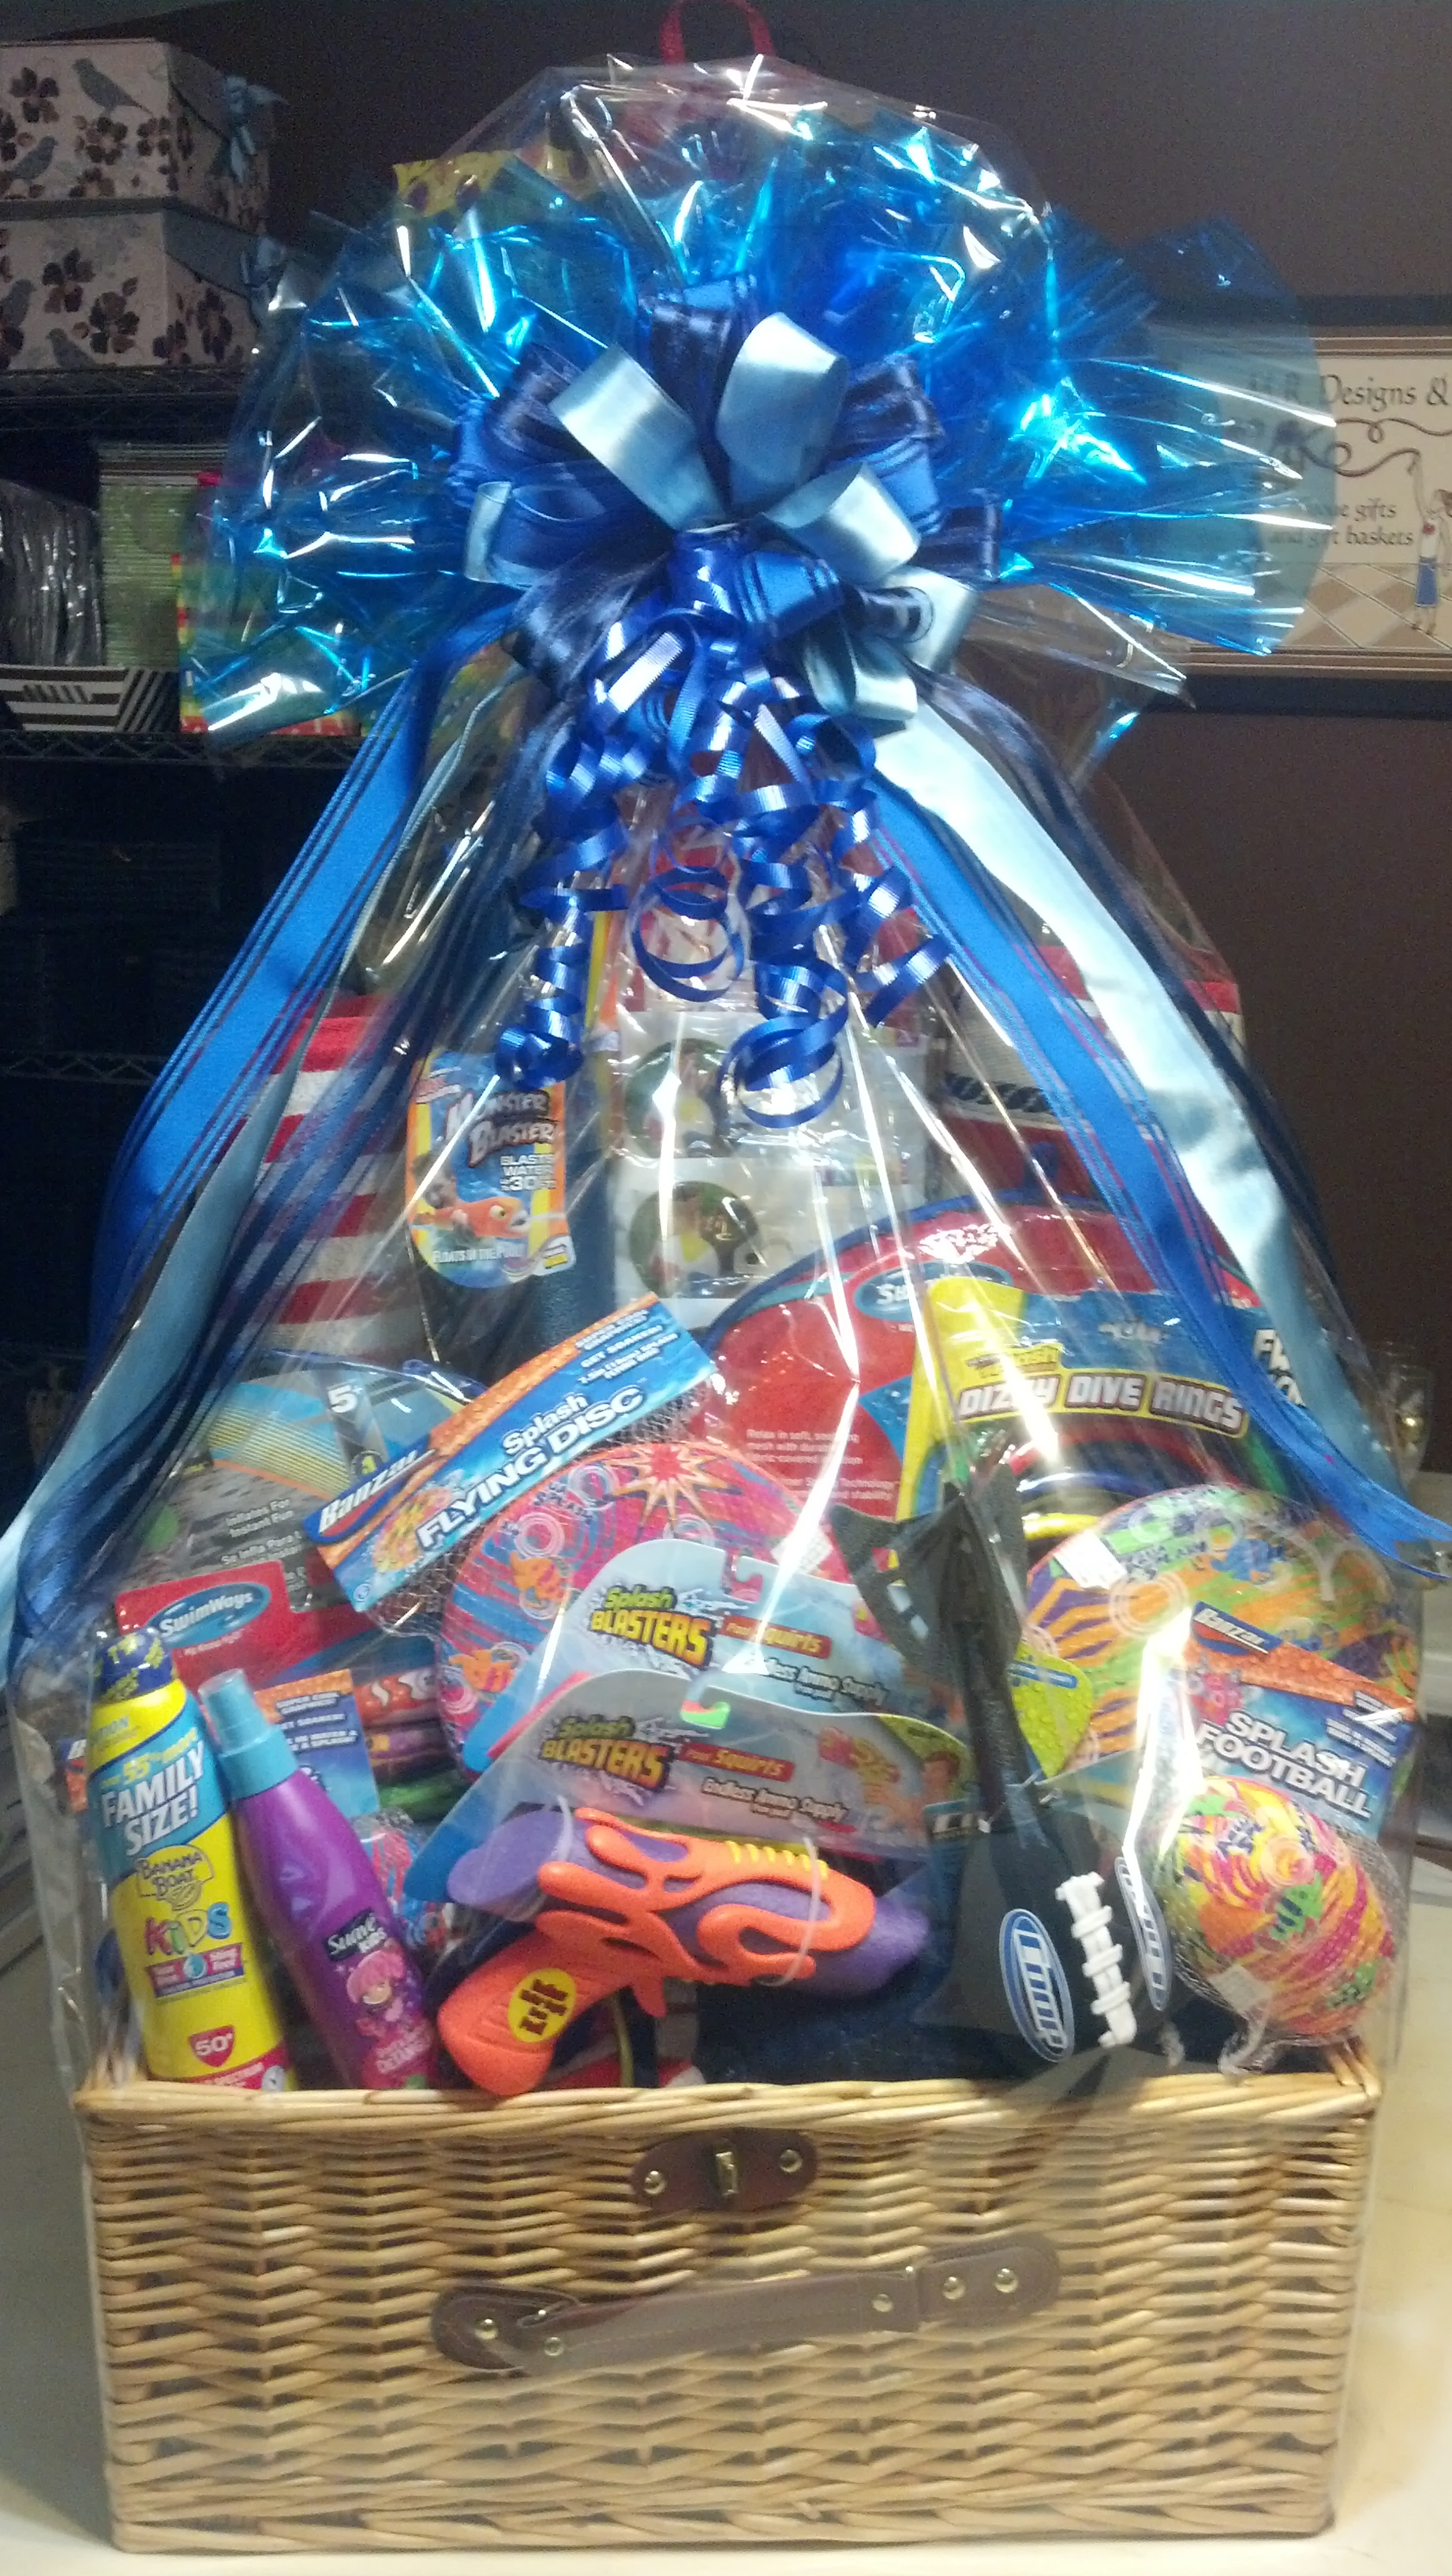 Black oak casino gift basket